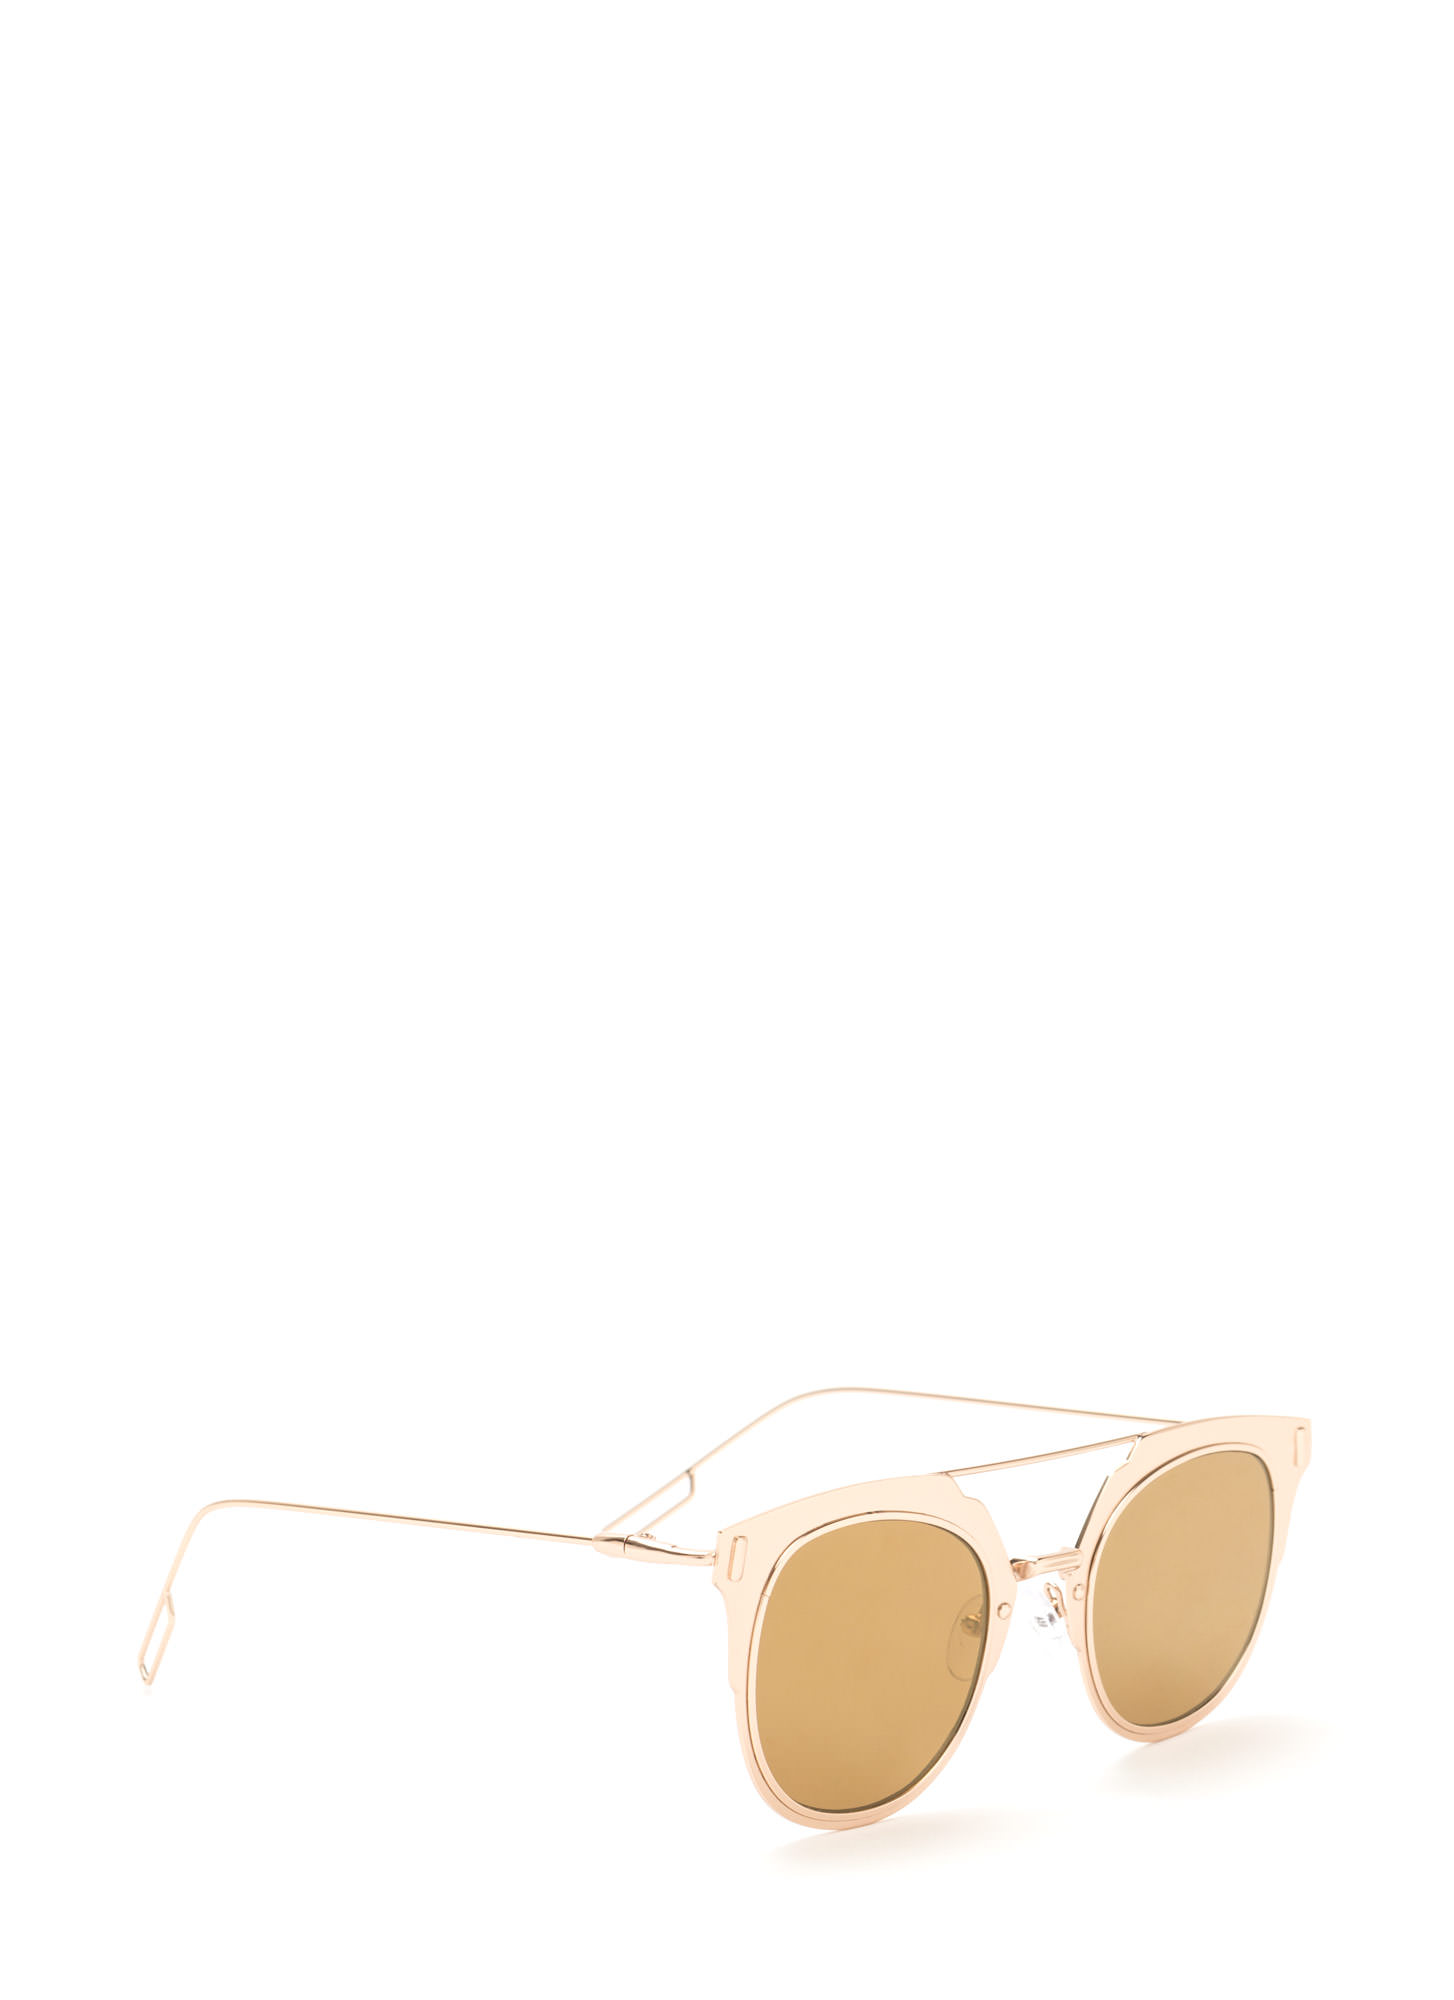 Hollywood Star Metallic Sunglasses GOLDBROWN